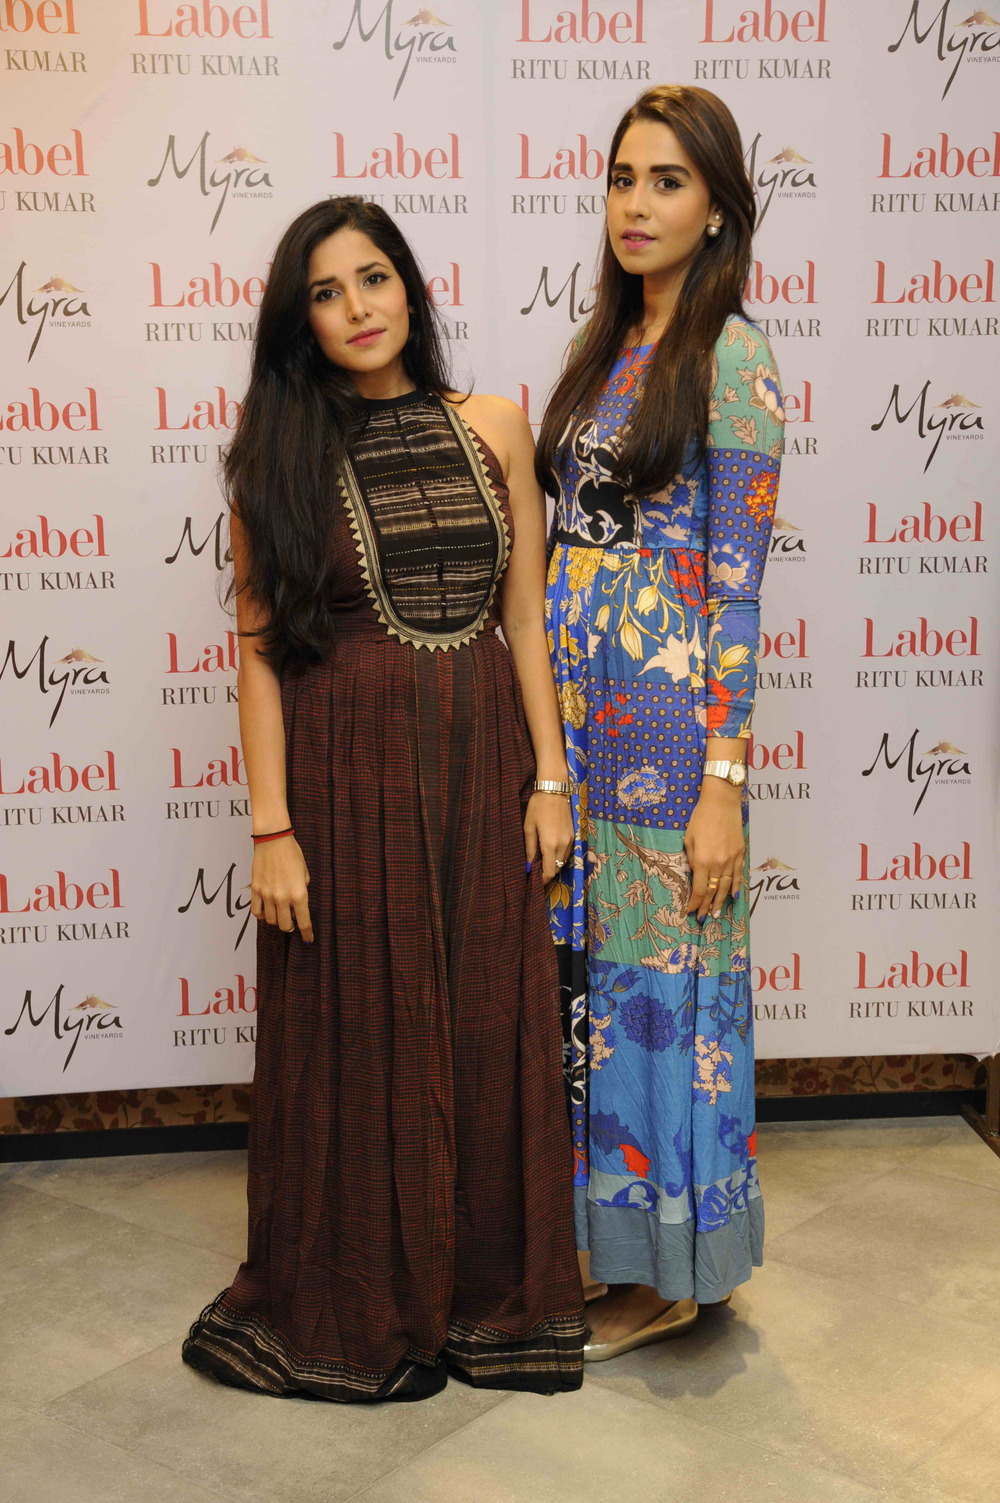 label-ritu-kumar-palladium-launch-10.jpg